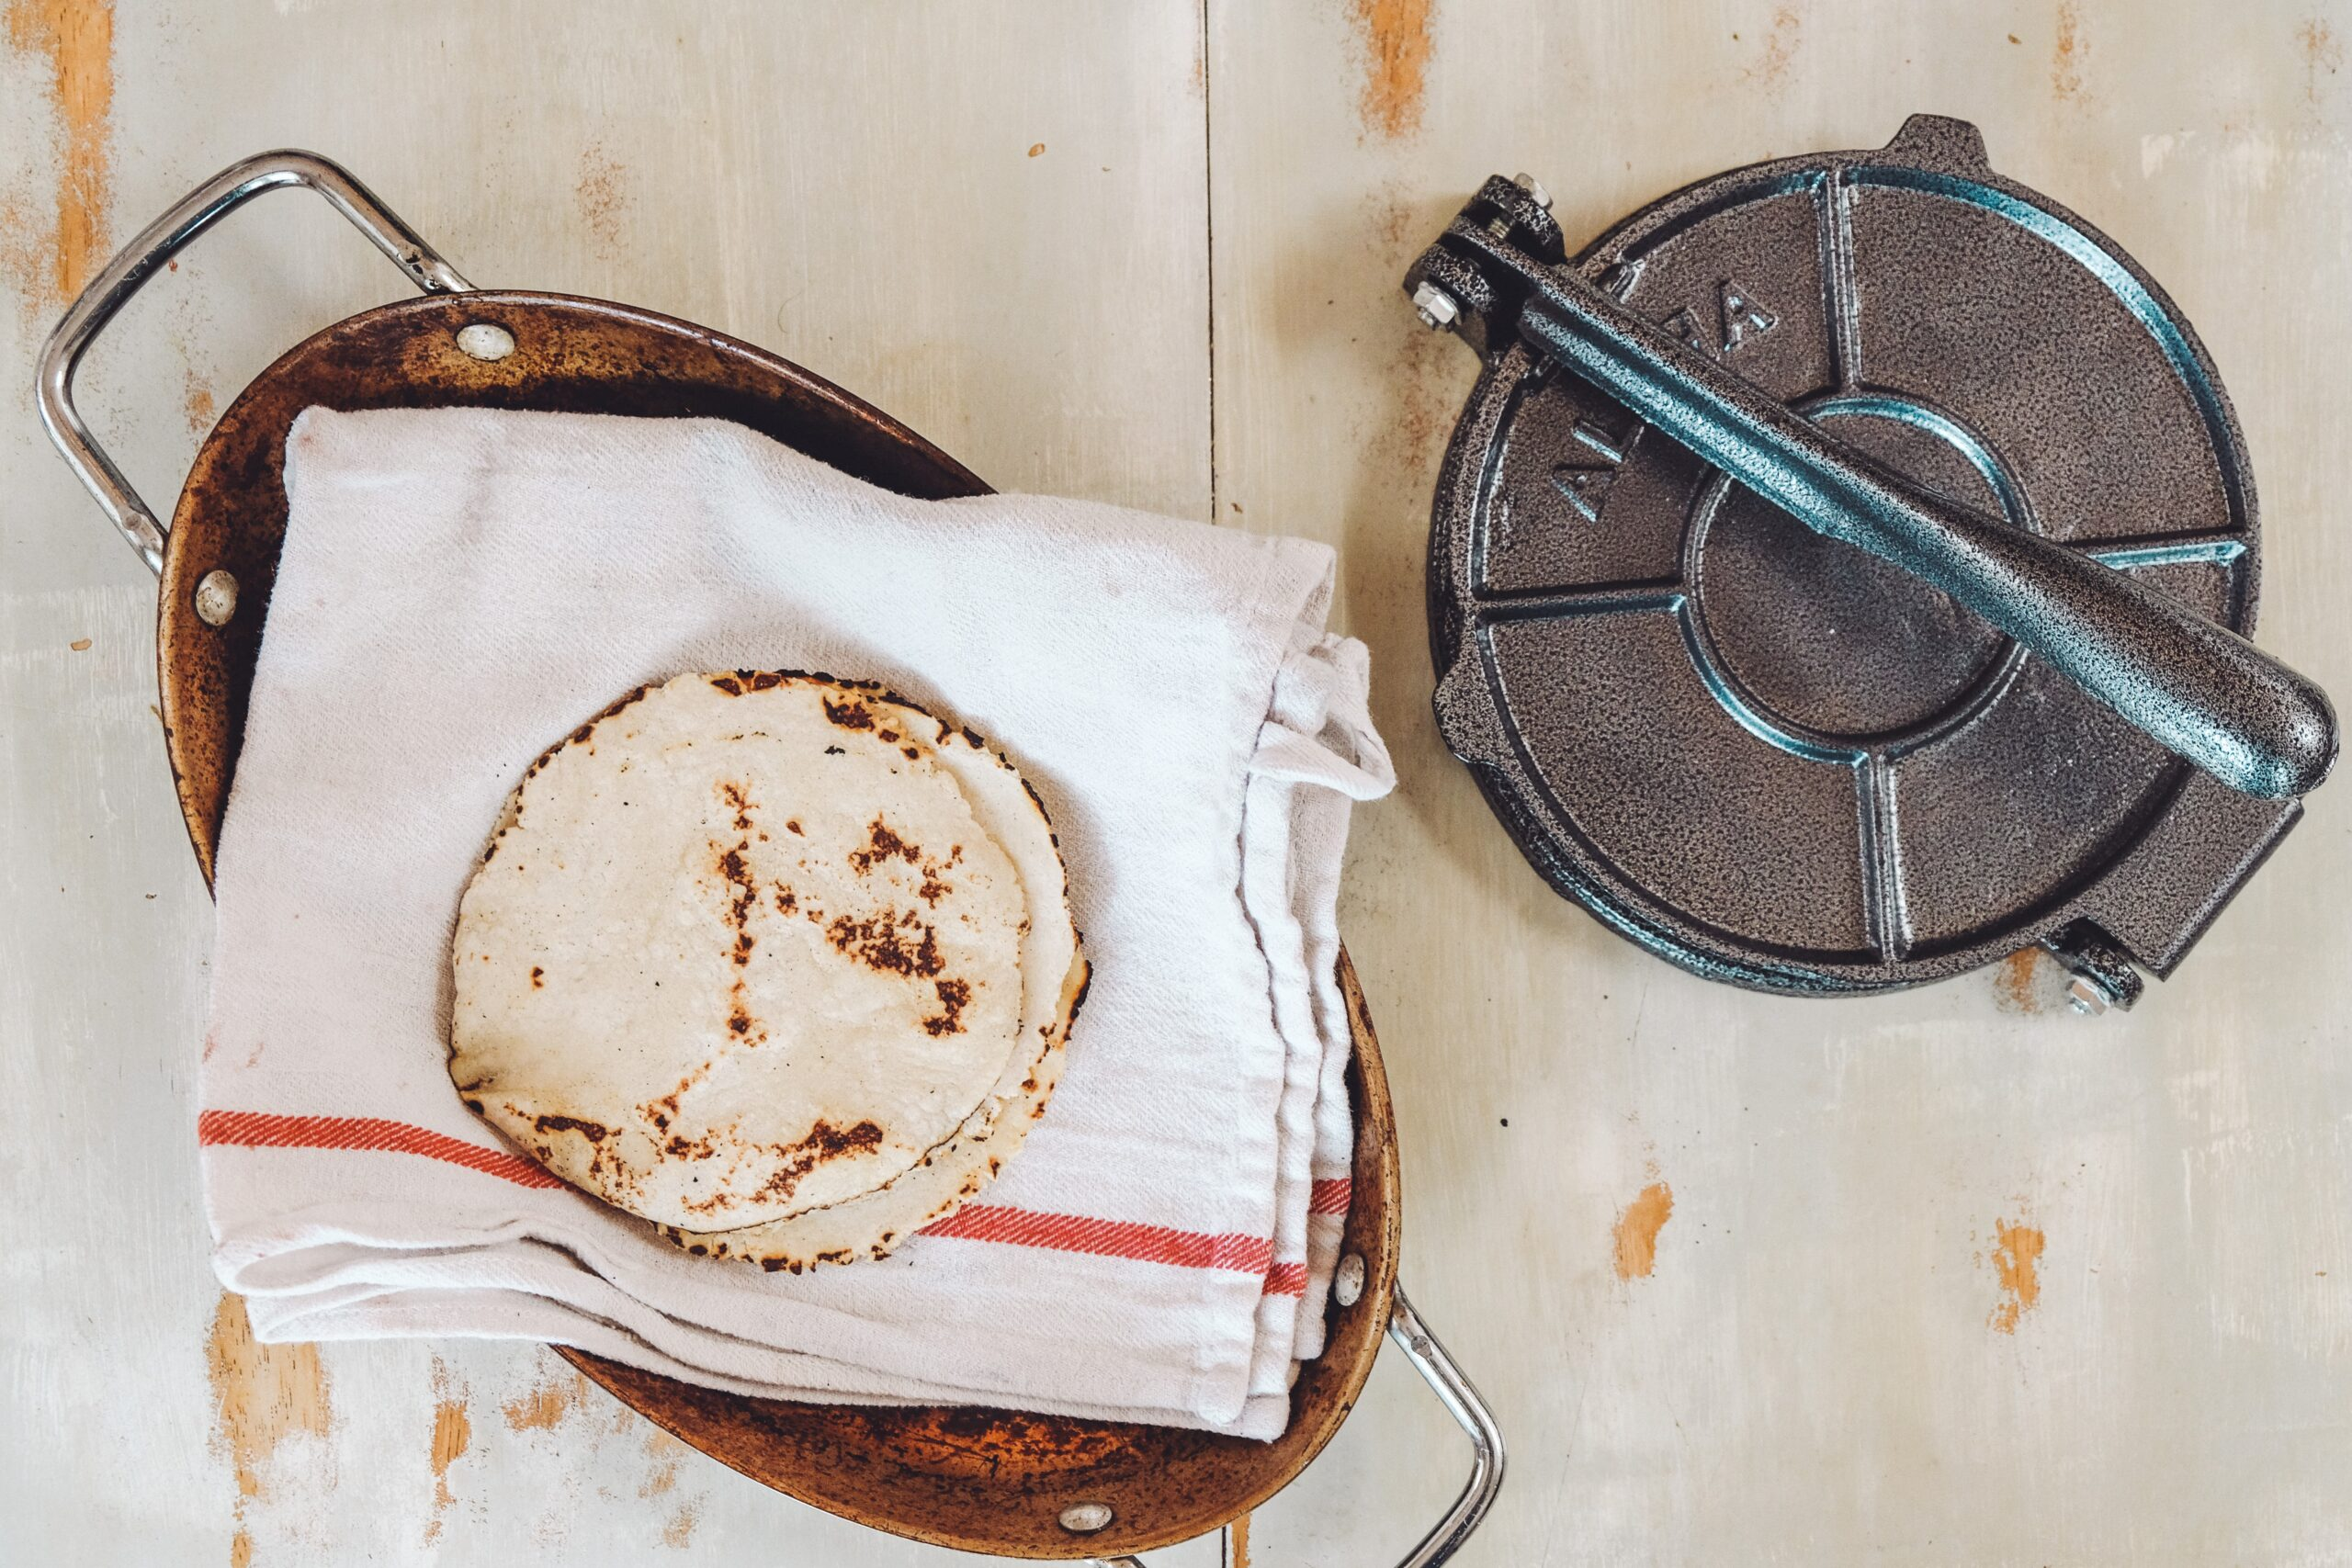 Hand To Mouth: Artisan Creativity Perfects The Tortilla